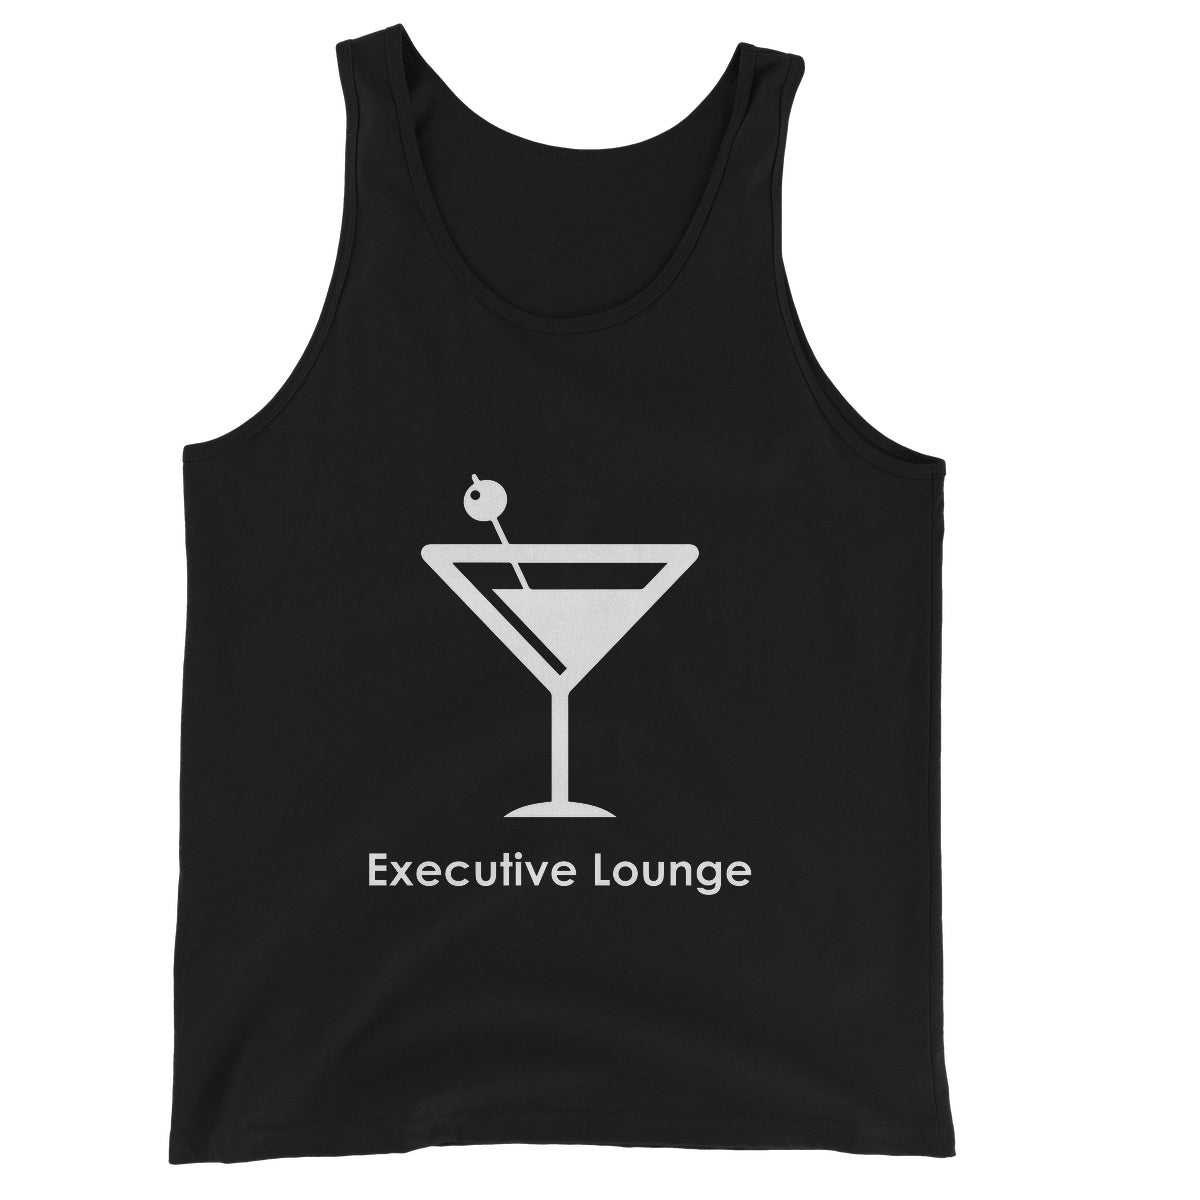 Executive Lounge Collection Unisex Jersey Tank Top